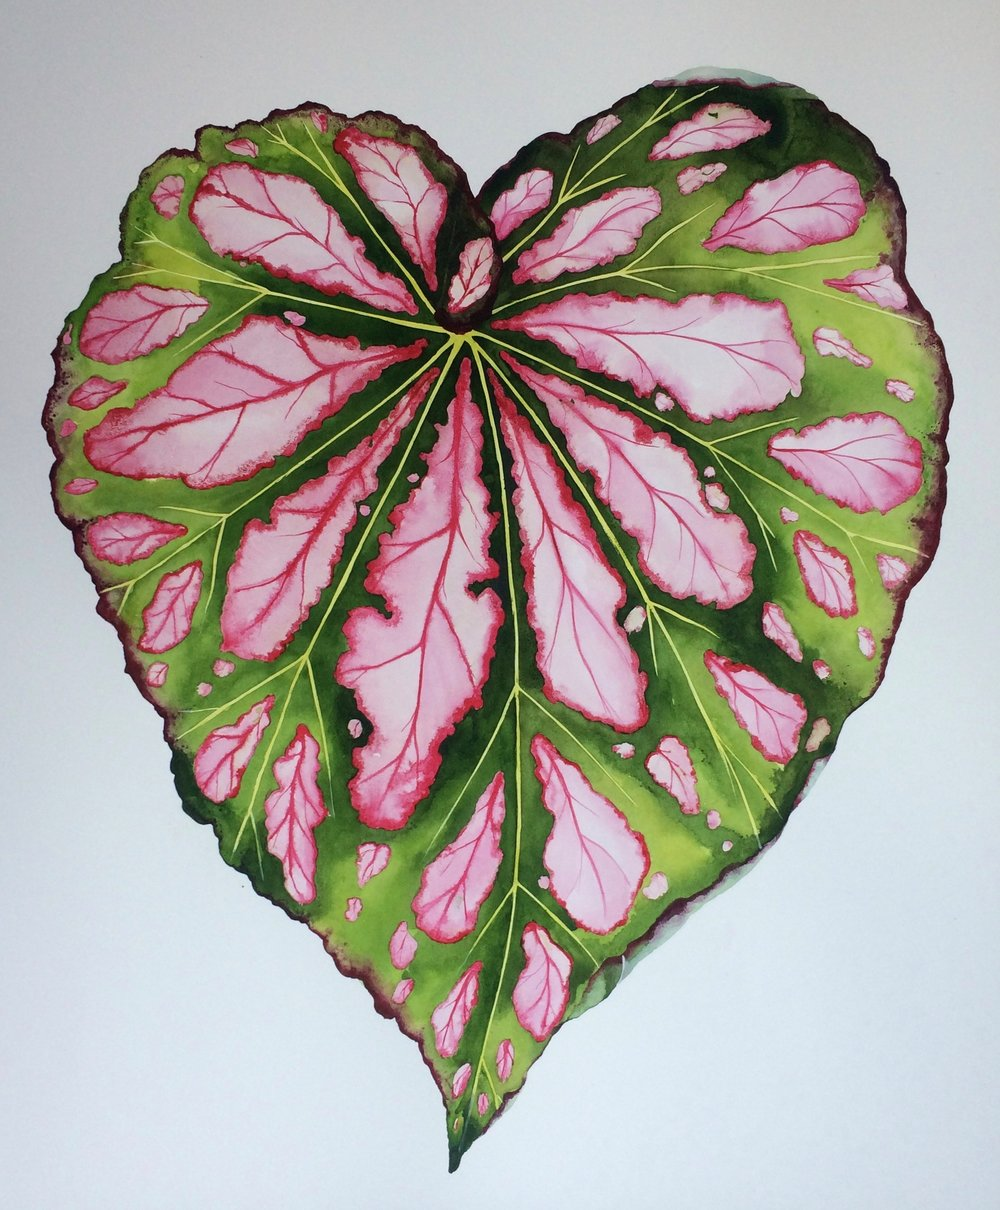 Idoline Duke  Big Begonia Leaf  watercolor on paper 35 x 30 in.